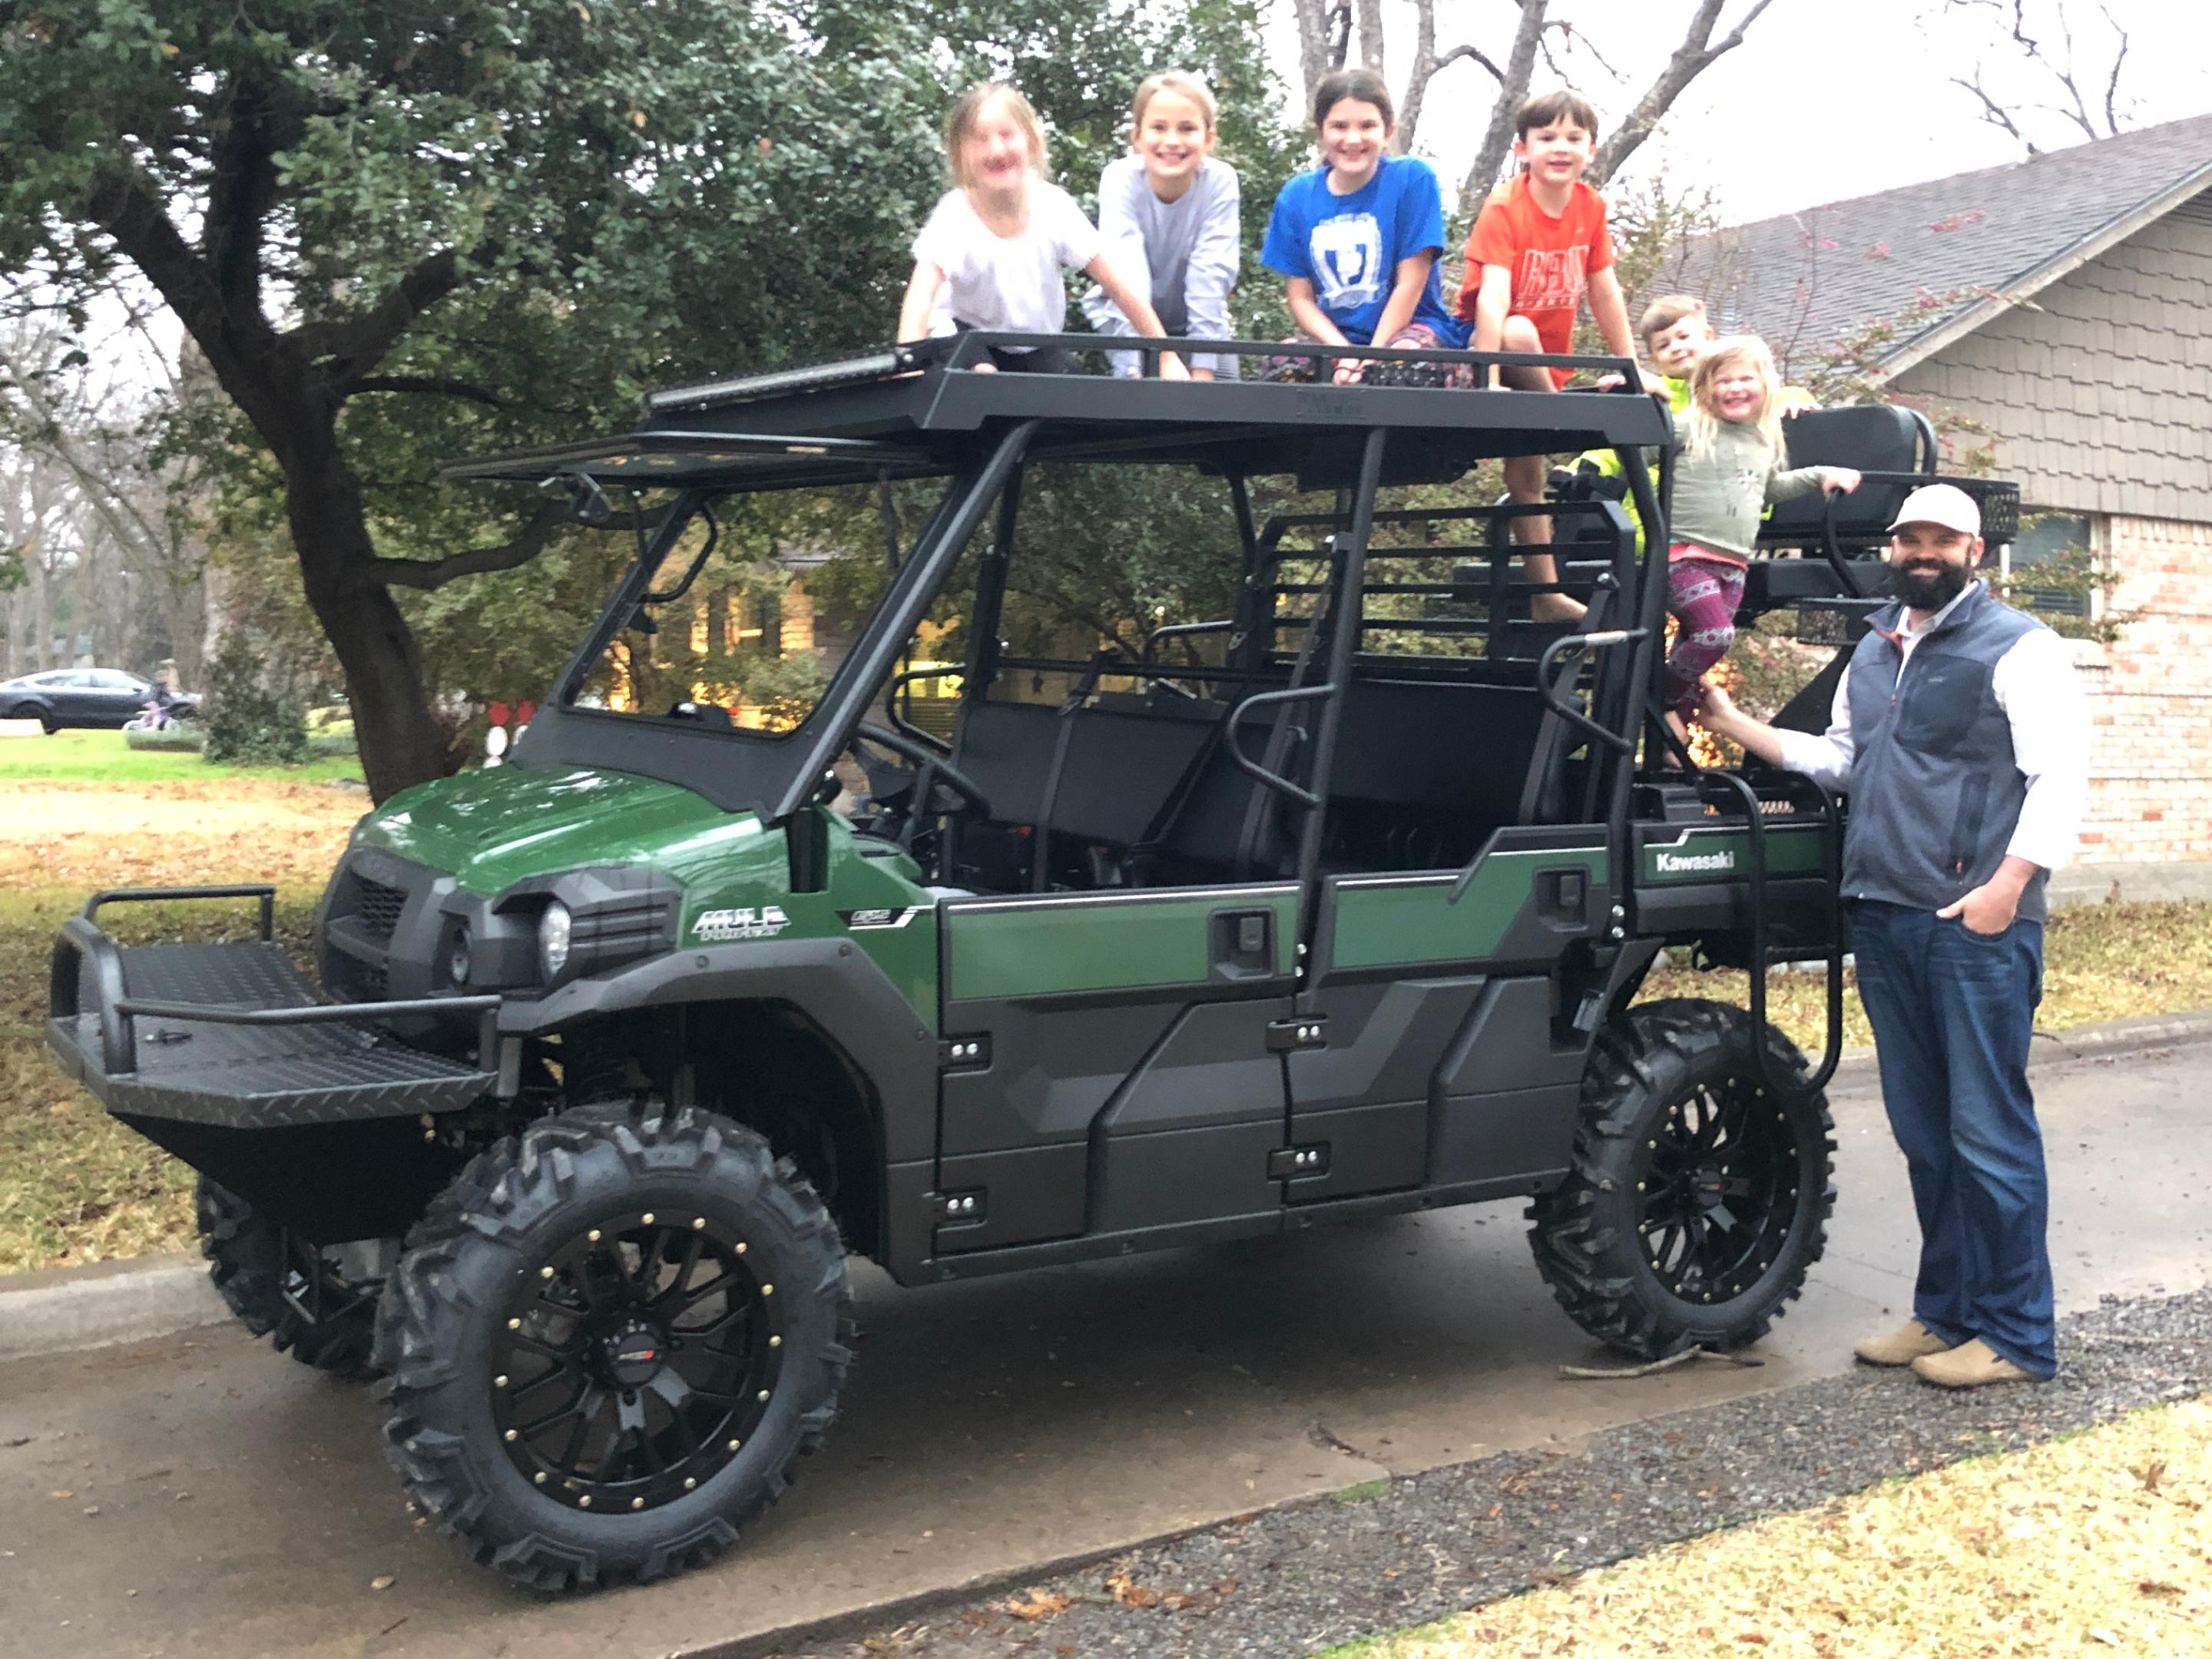 kawasaki-mule-pro-fxt-outfit-by-texas-outdoors-ranch-armor-metal-top-high-seat-feeder-bumper-for-customer-mac.jpg